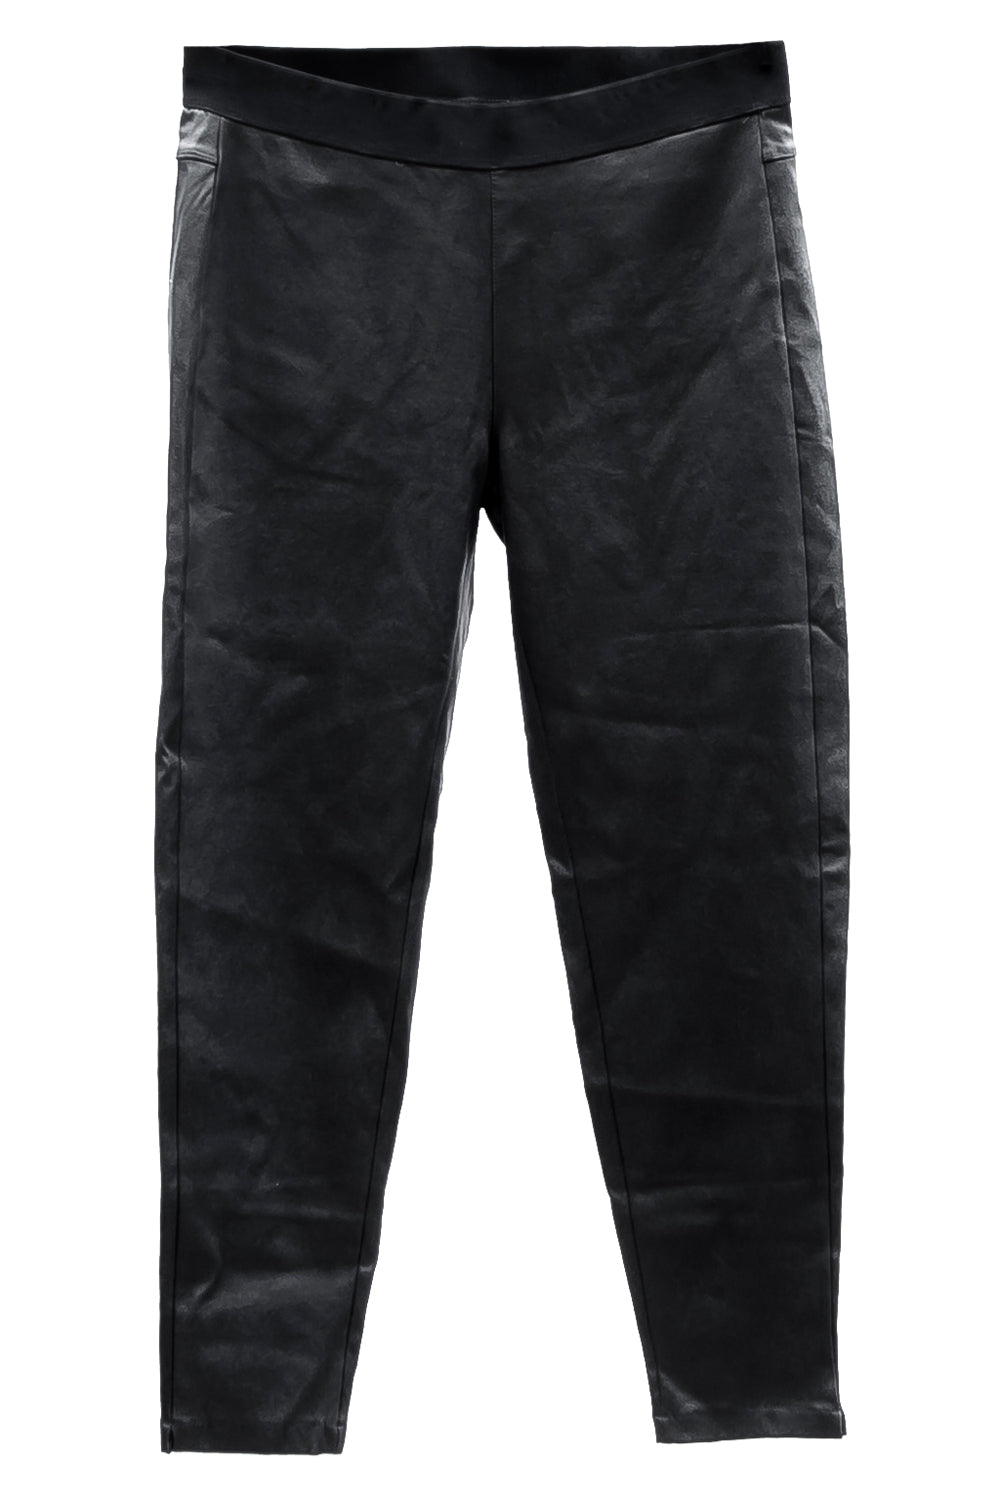 Lounge The Label / Perugia Pant / Black